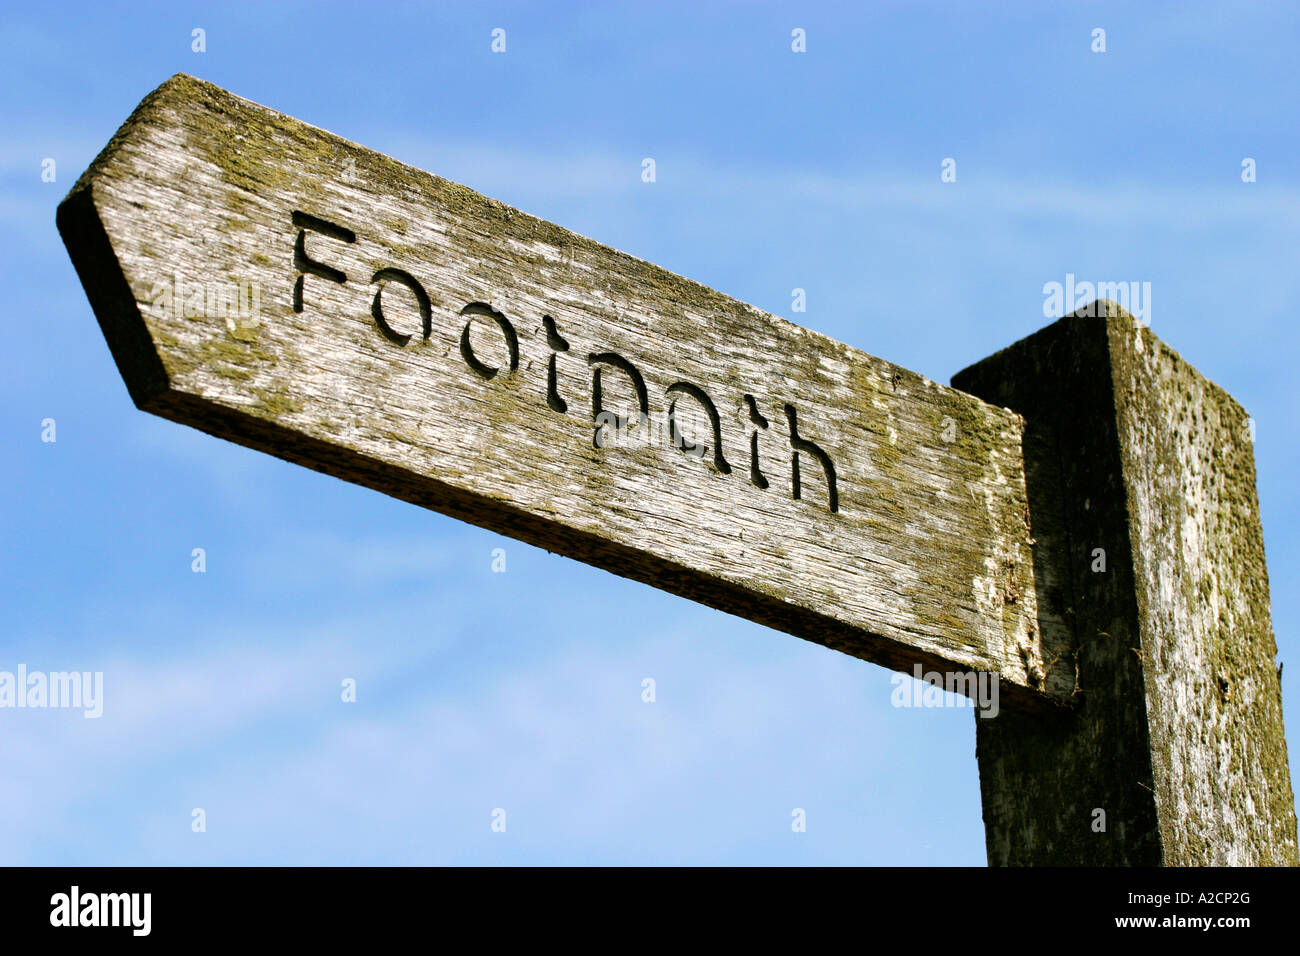 Wooden Footpath Sign showing the Line of the Public Footpath - Stock Image